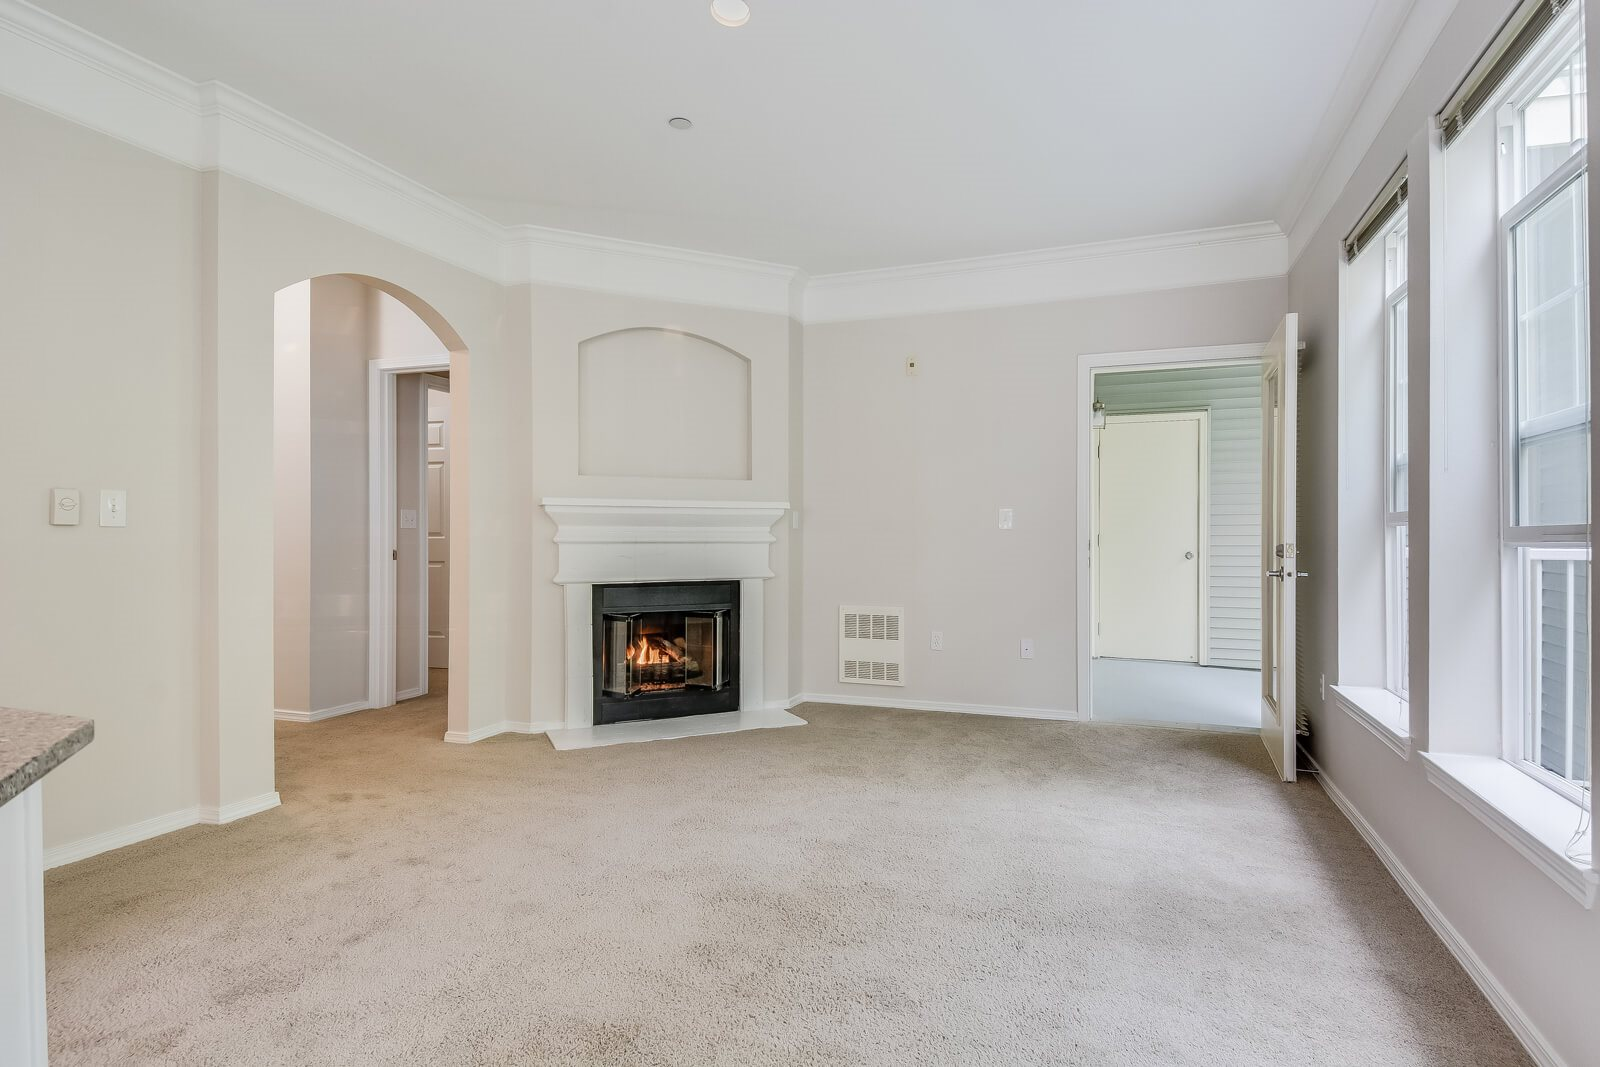 Living Room with Fireplace at The Estates at Cougar Mountain, 2128 Shy Bear Way NW, Issaquah